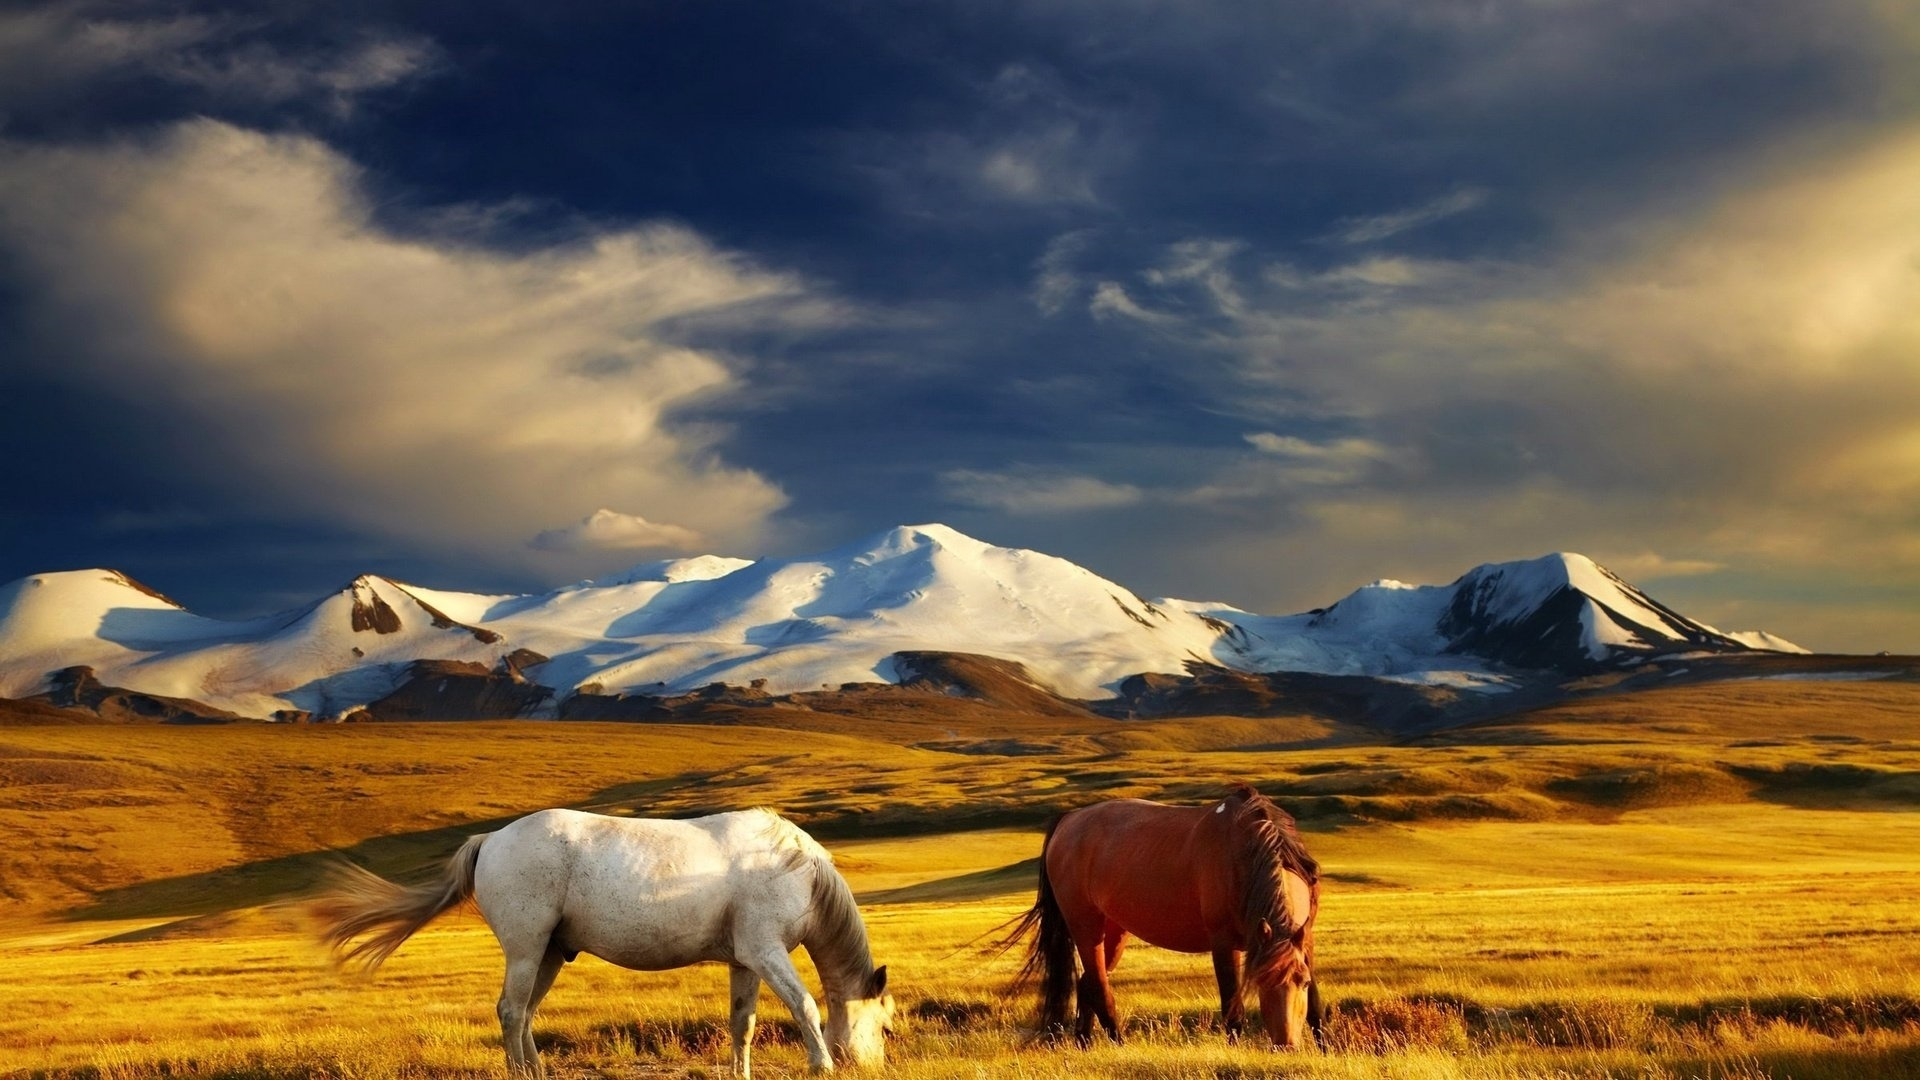 Mongolia Nature background picture